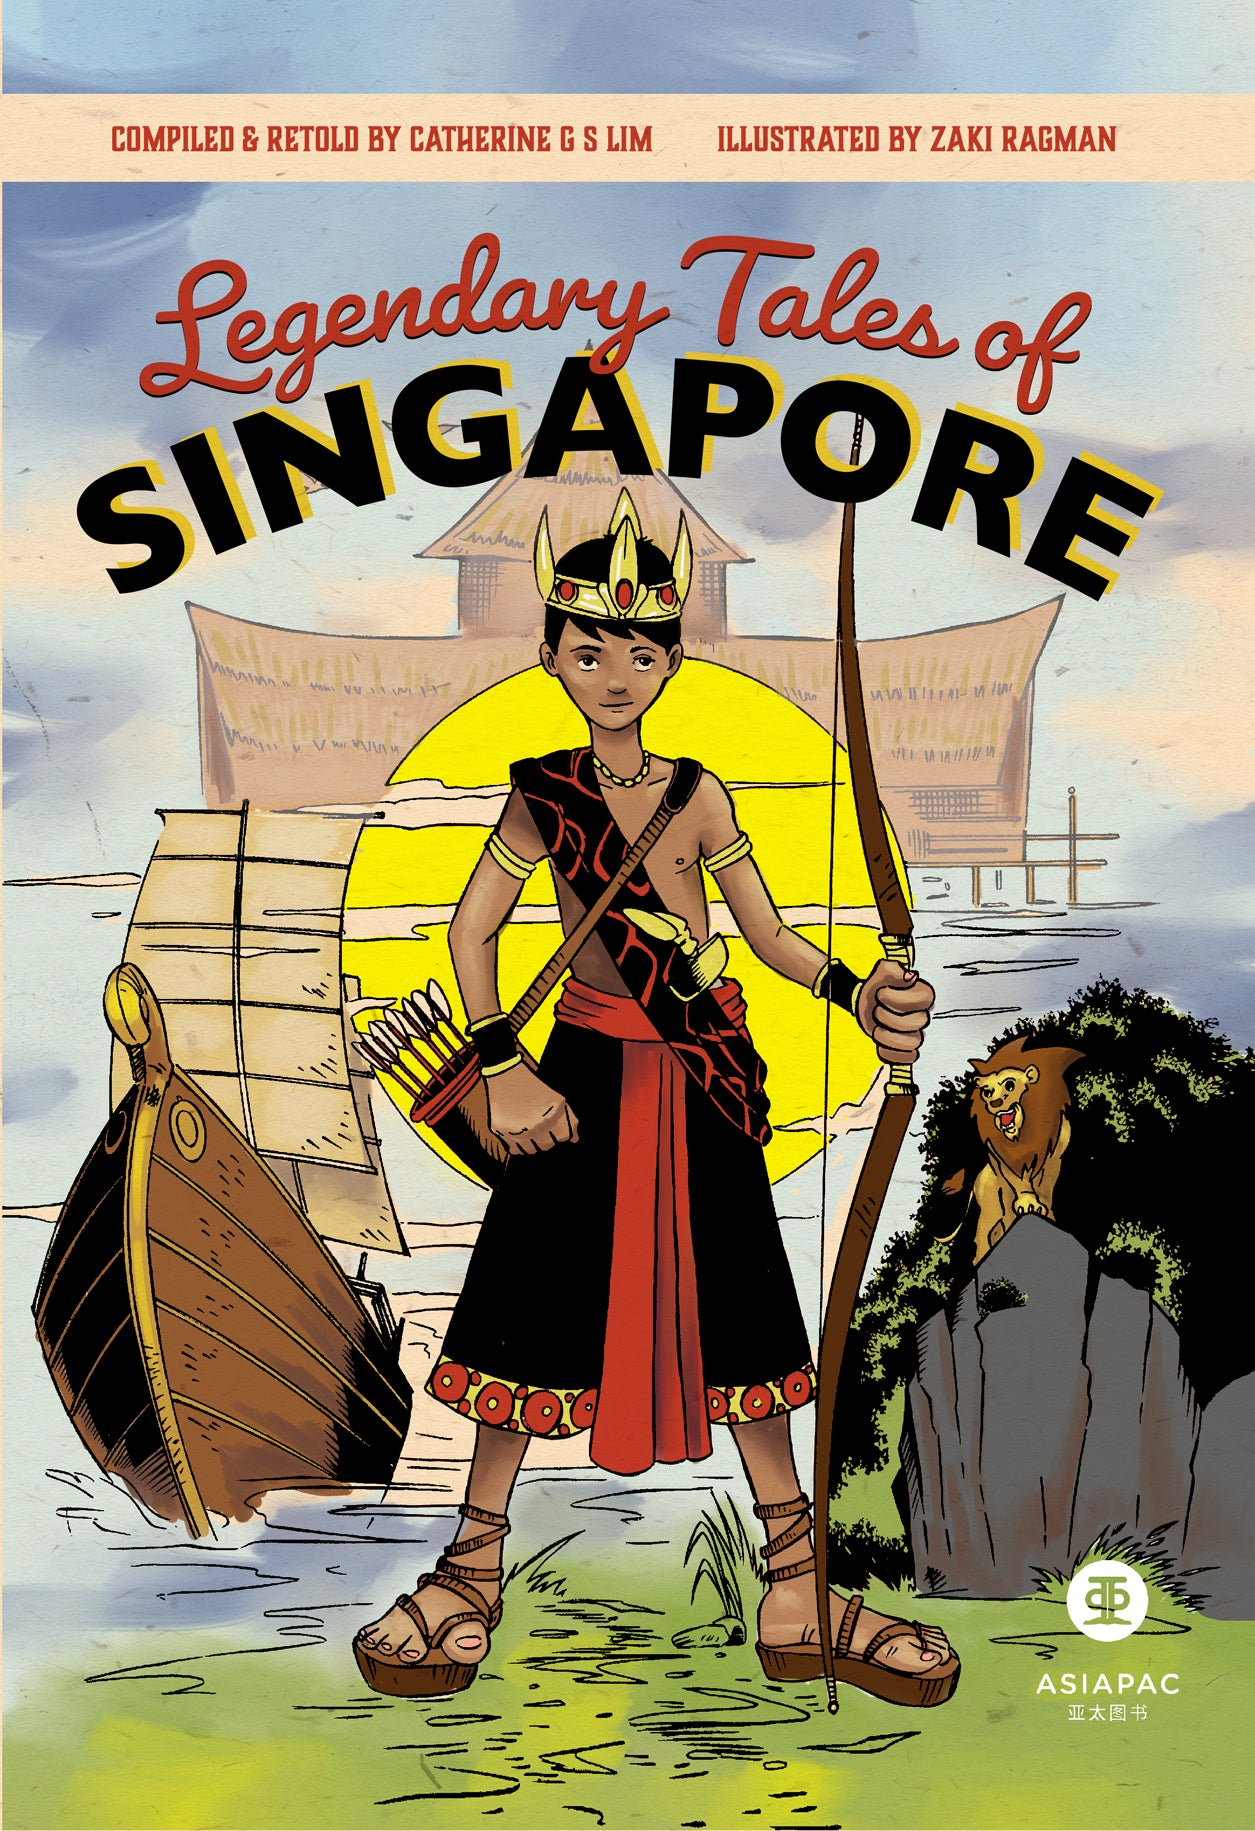 Legendary Tales of Singapore (updated cover)